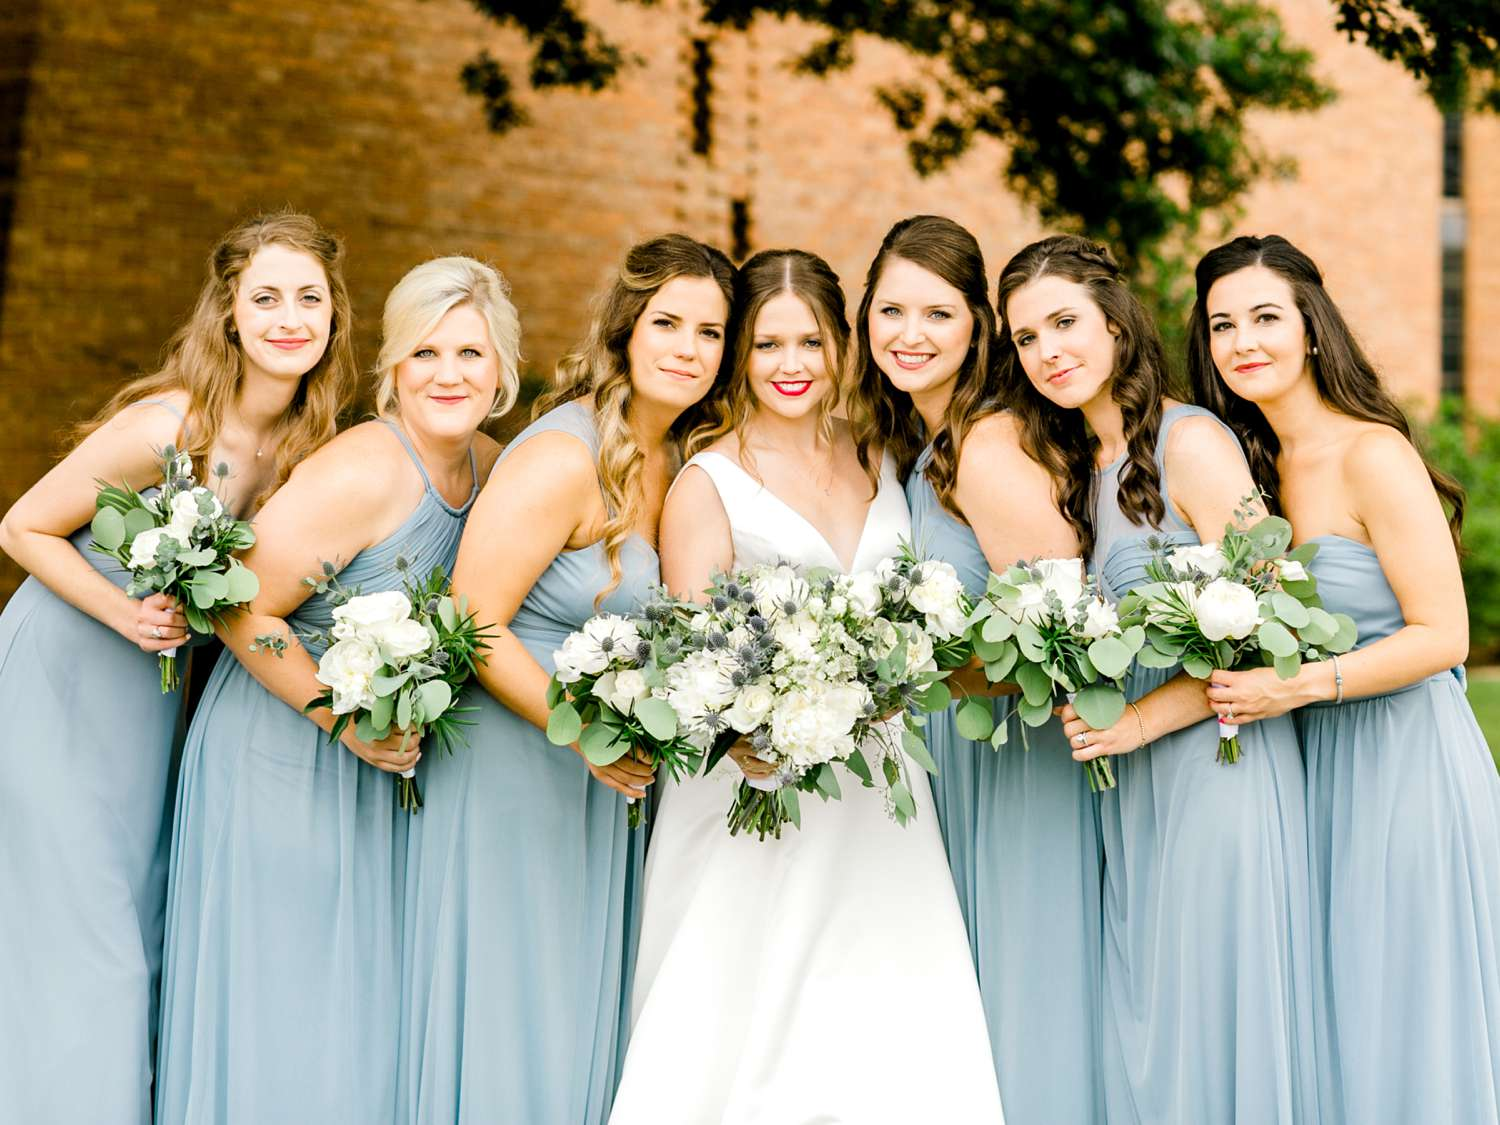 HANNAH+CRAIG+CHILDS+TEXAS+TECH+WEDDING+ALLEEJ+LUBBOCK+PHOTOGRAPHER_0020.jpg